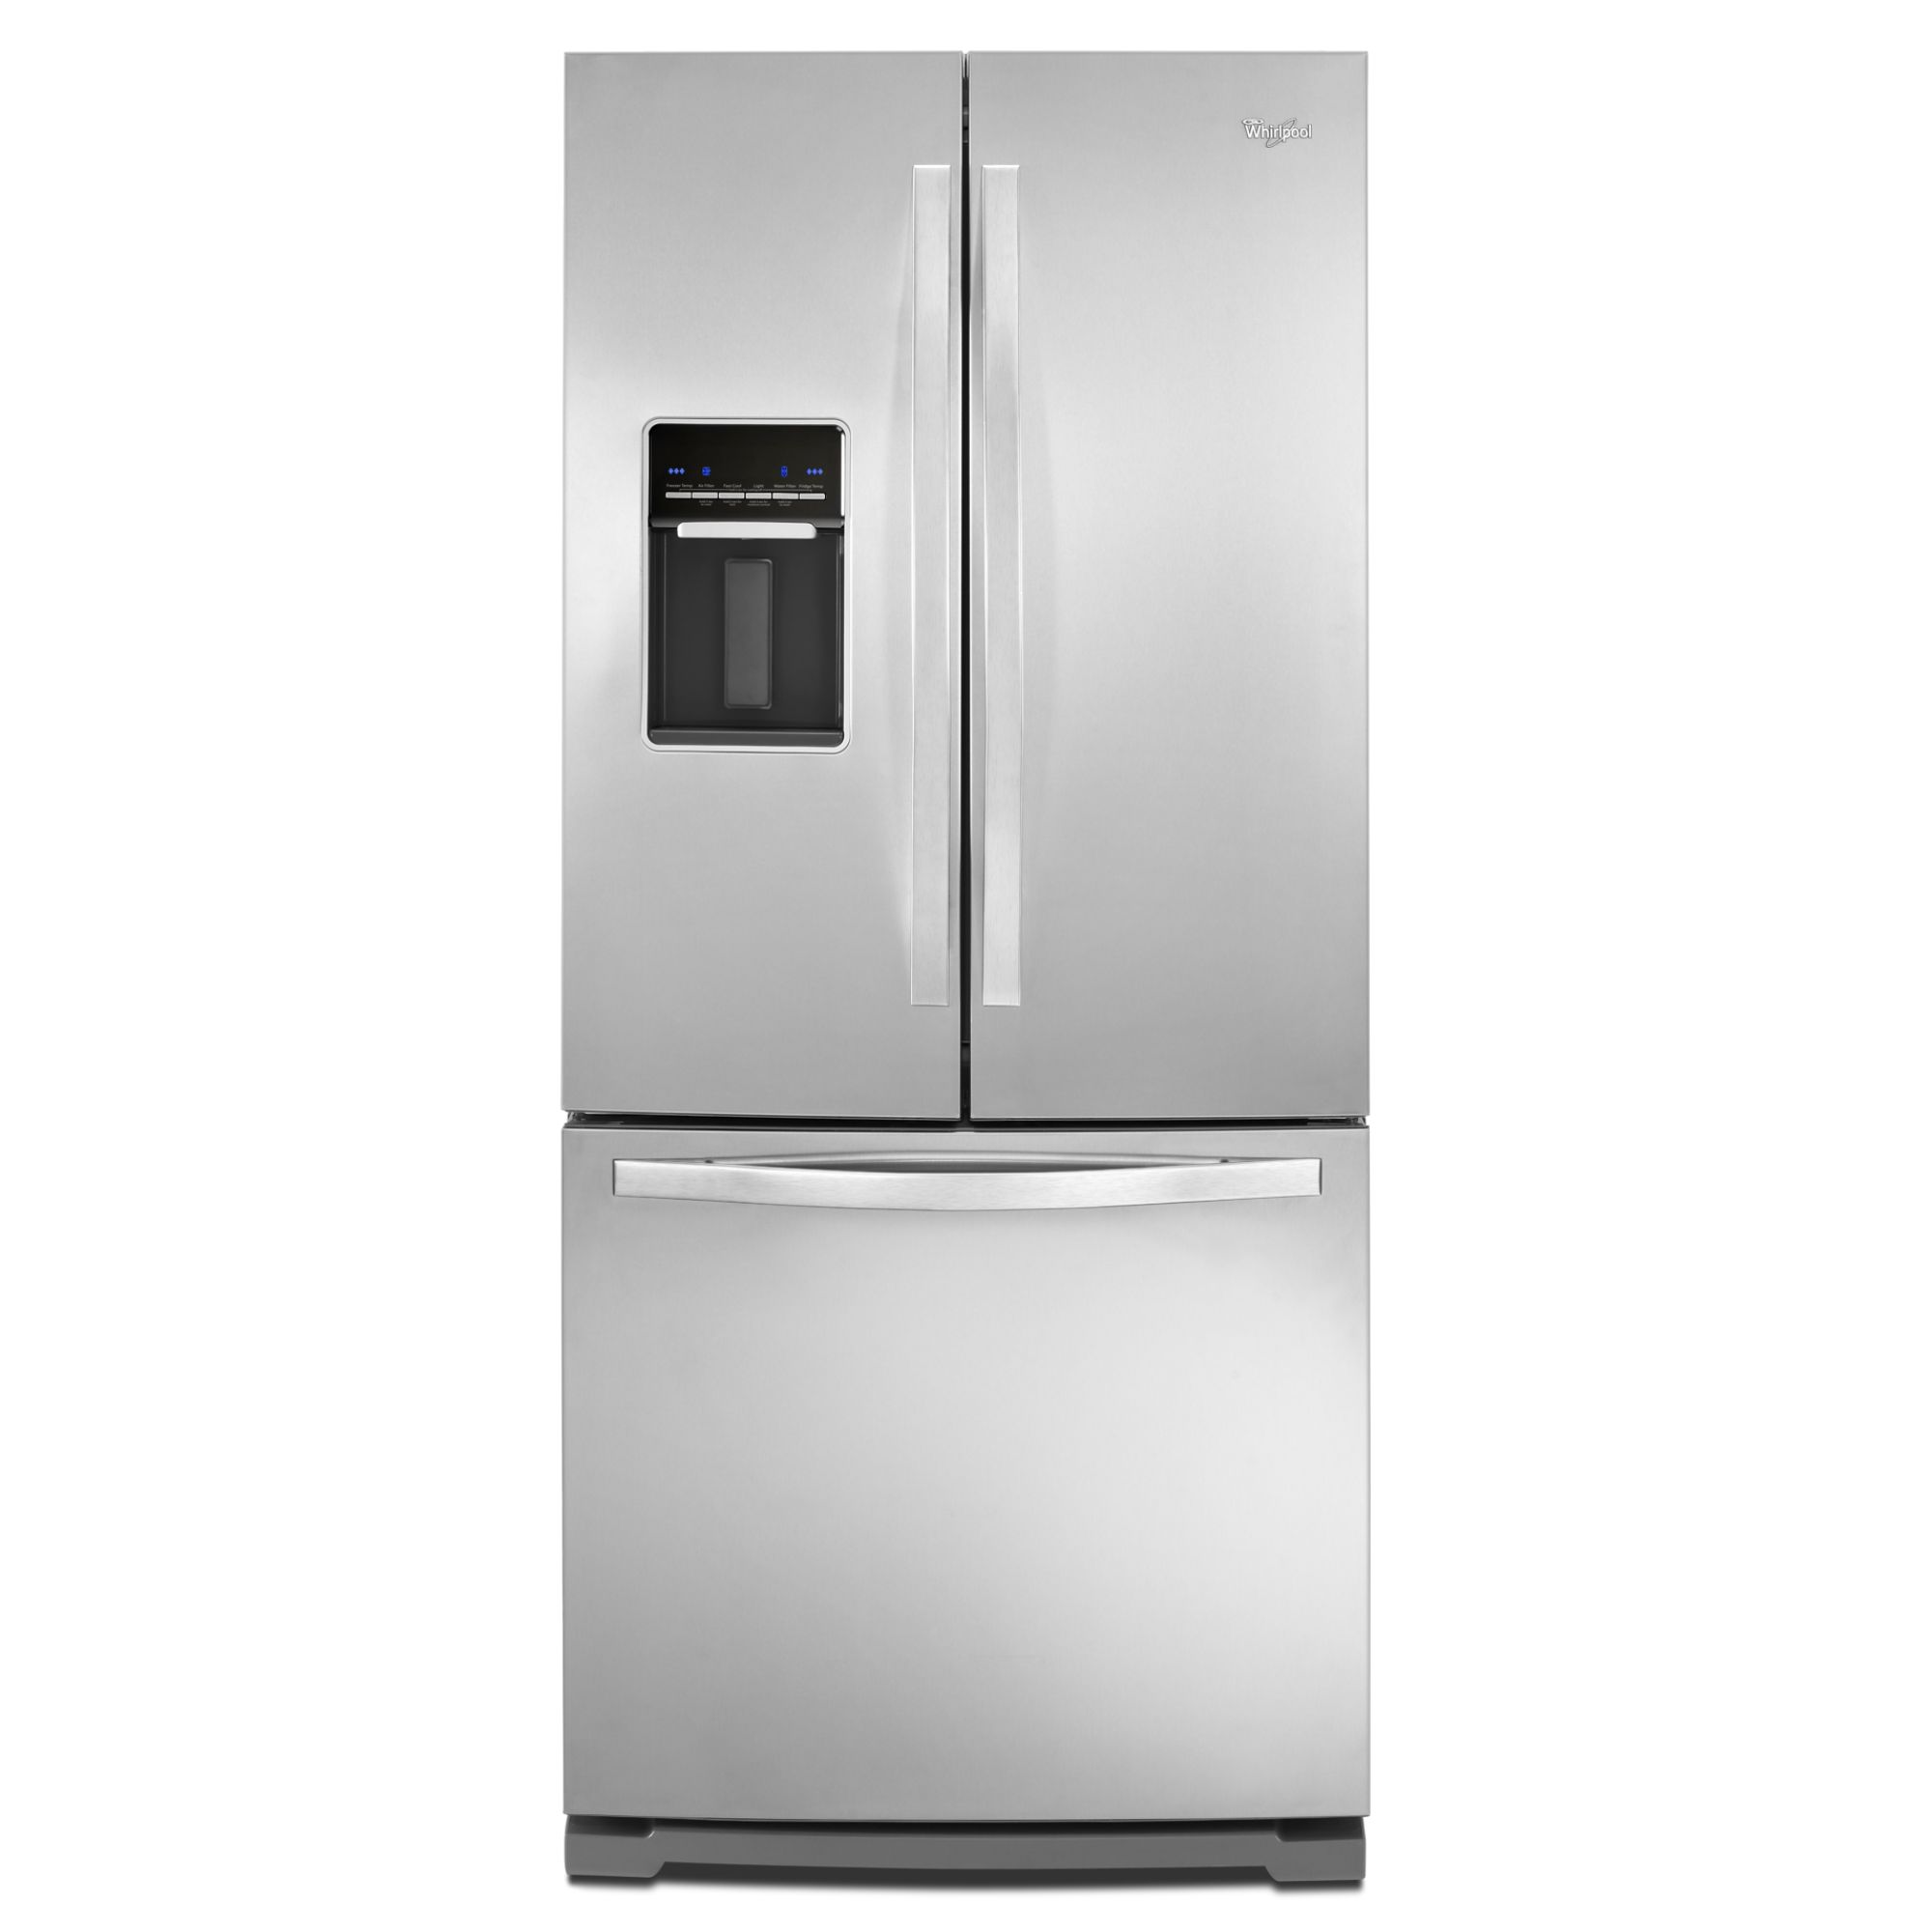 20 cu. ft. French Door Refrigerator w/ Exterior Dispenser - Stainless Steel